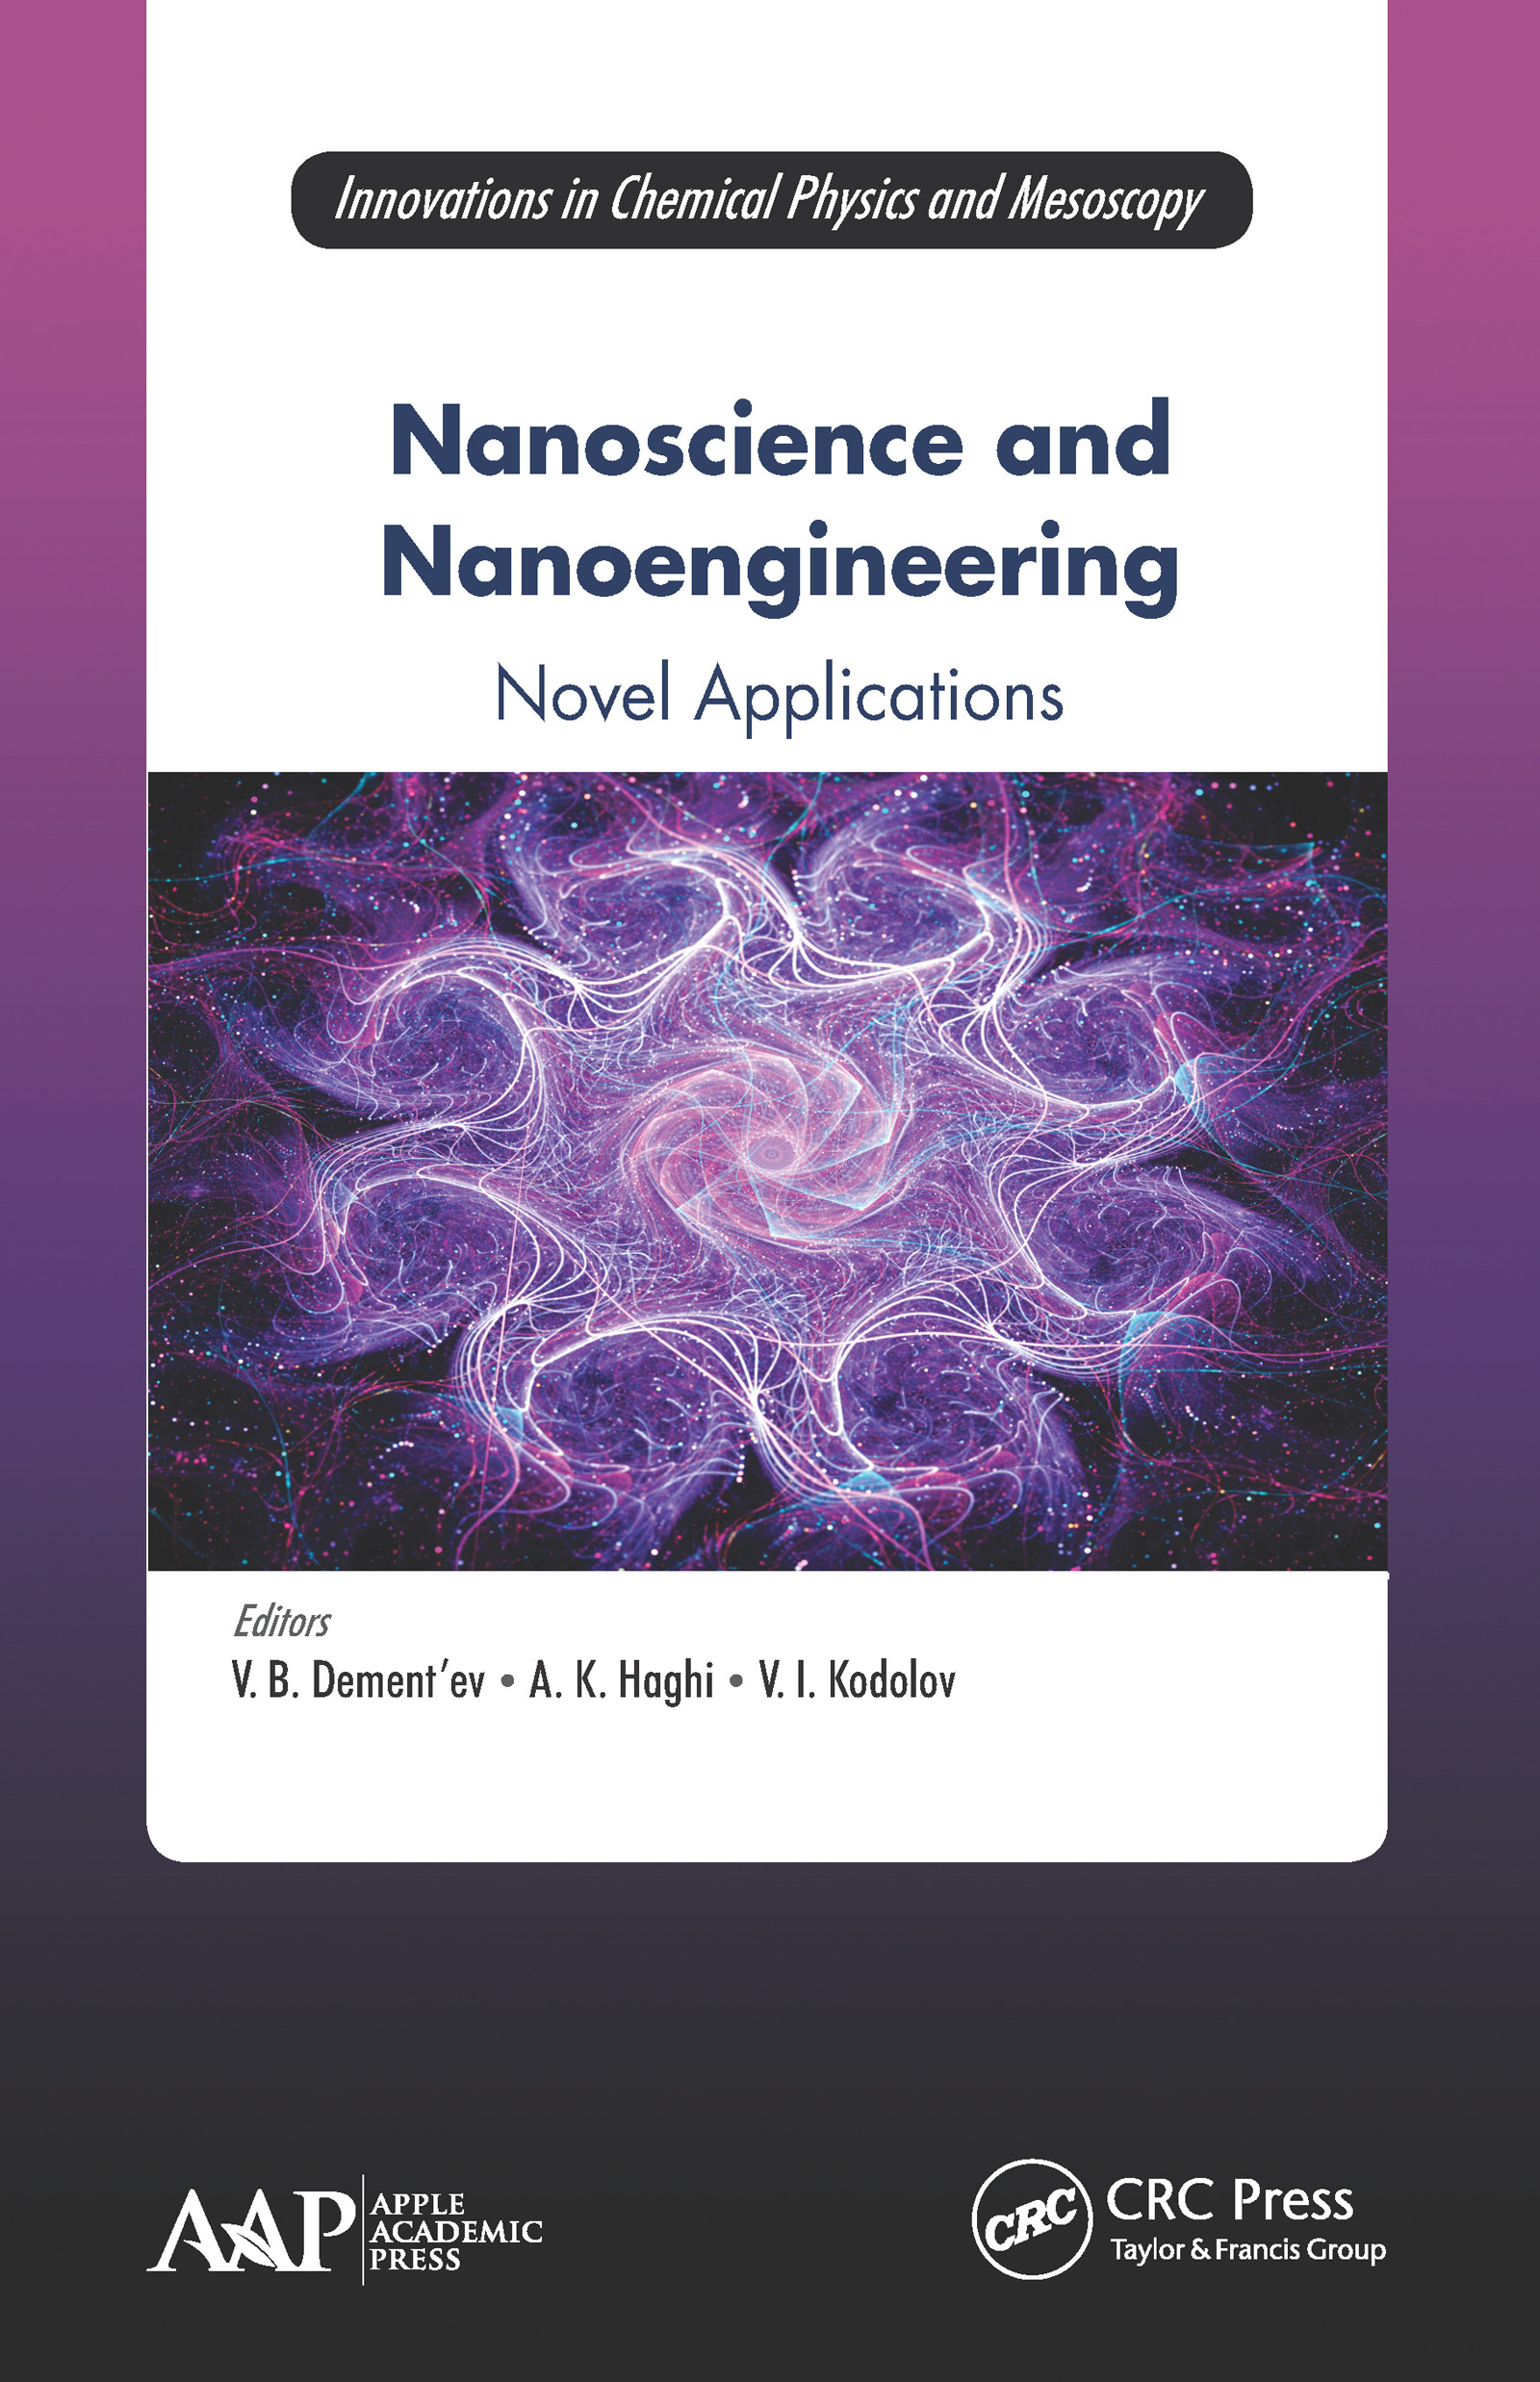 Nanoscience and Nanoengineering